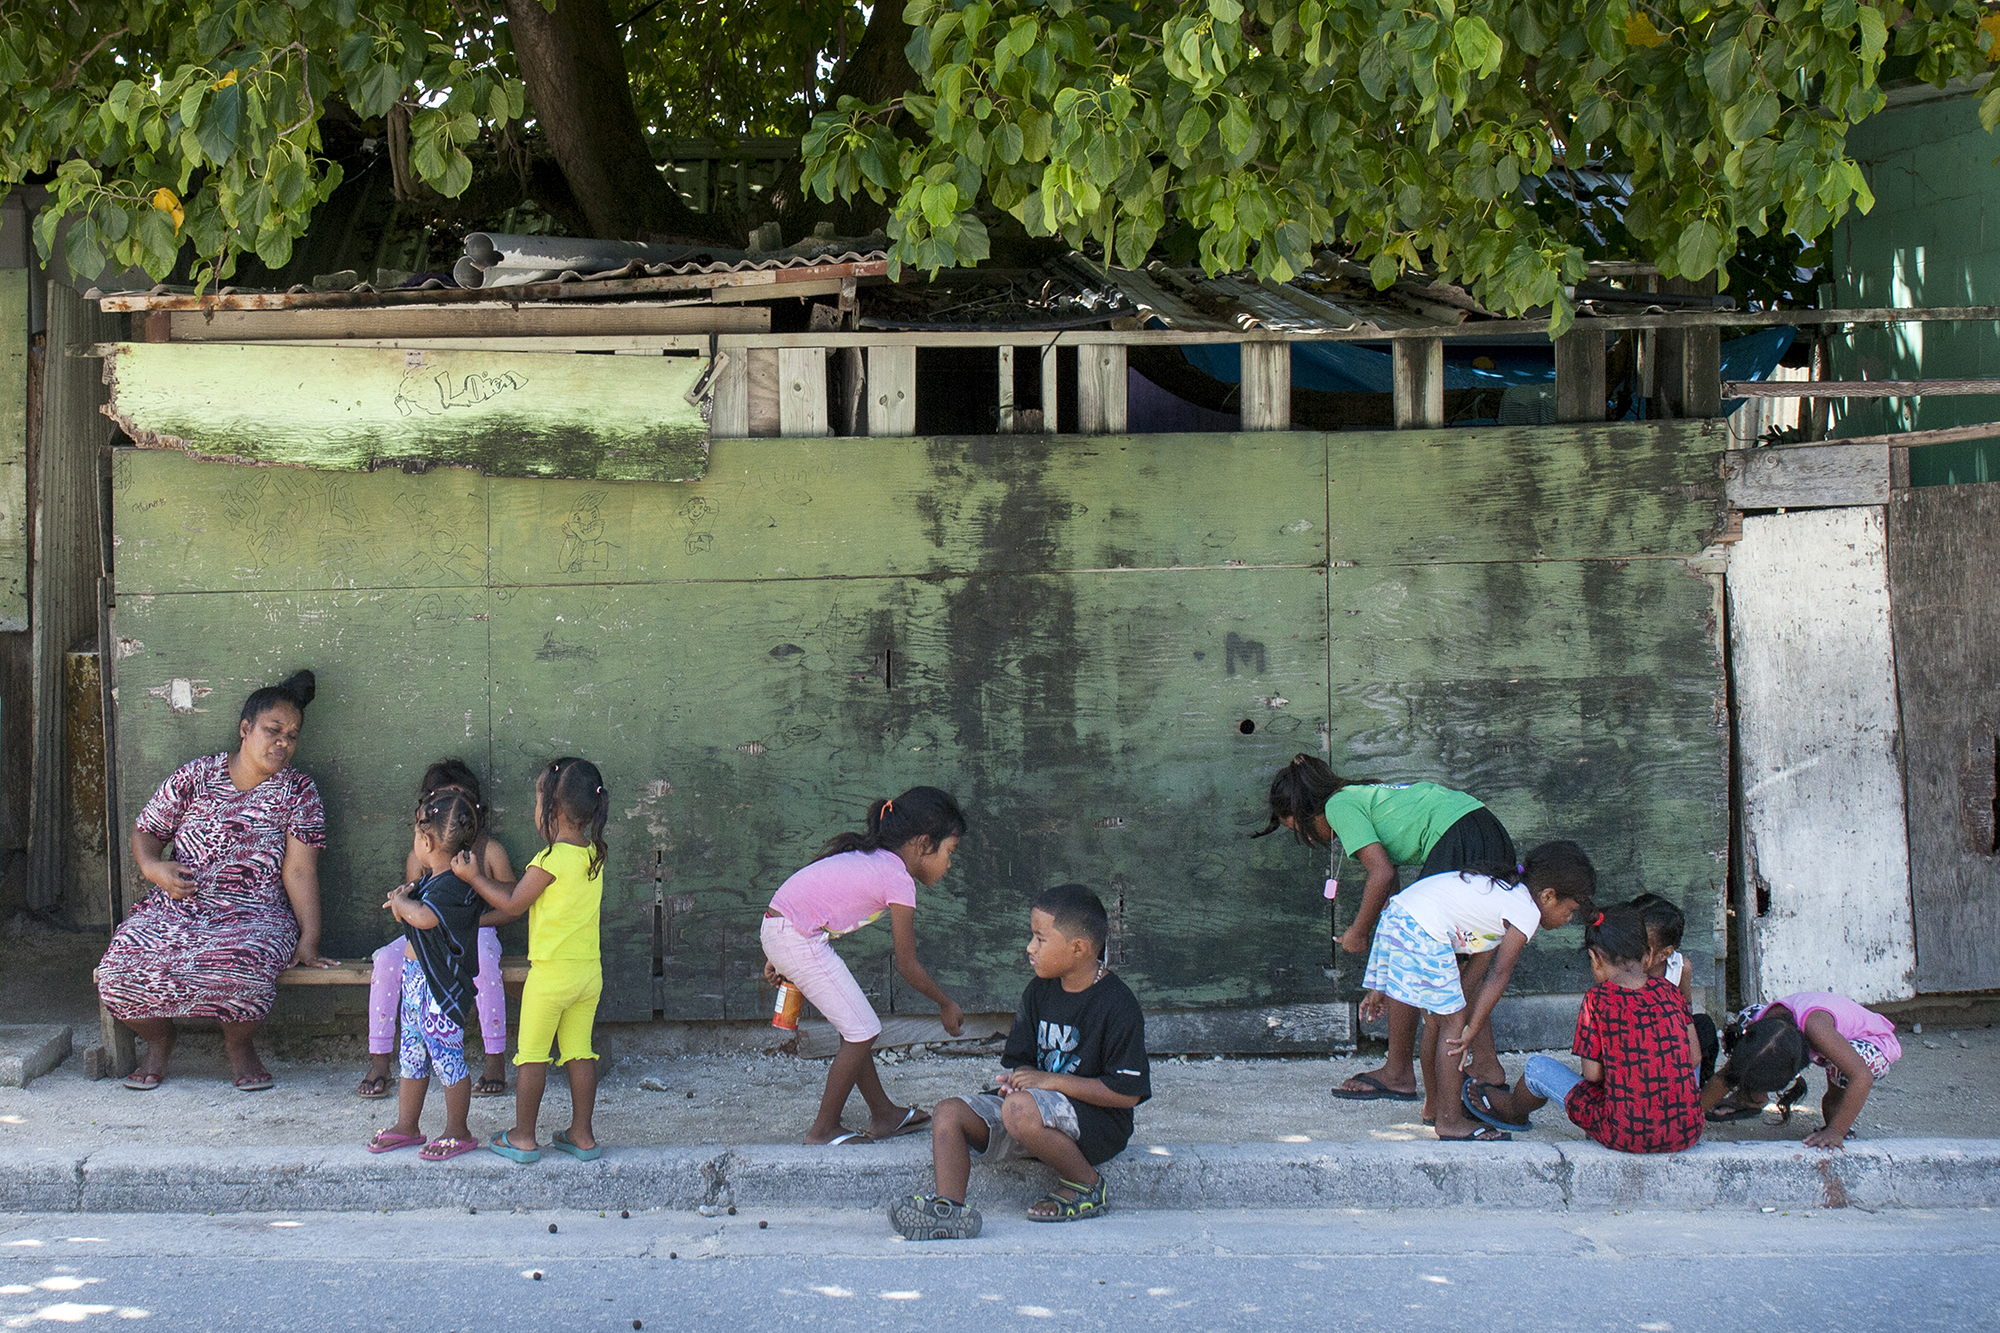 <p>Much of the population of Ebeye is under 18 years of age, and there are few employment opportunities</p>